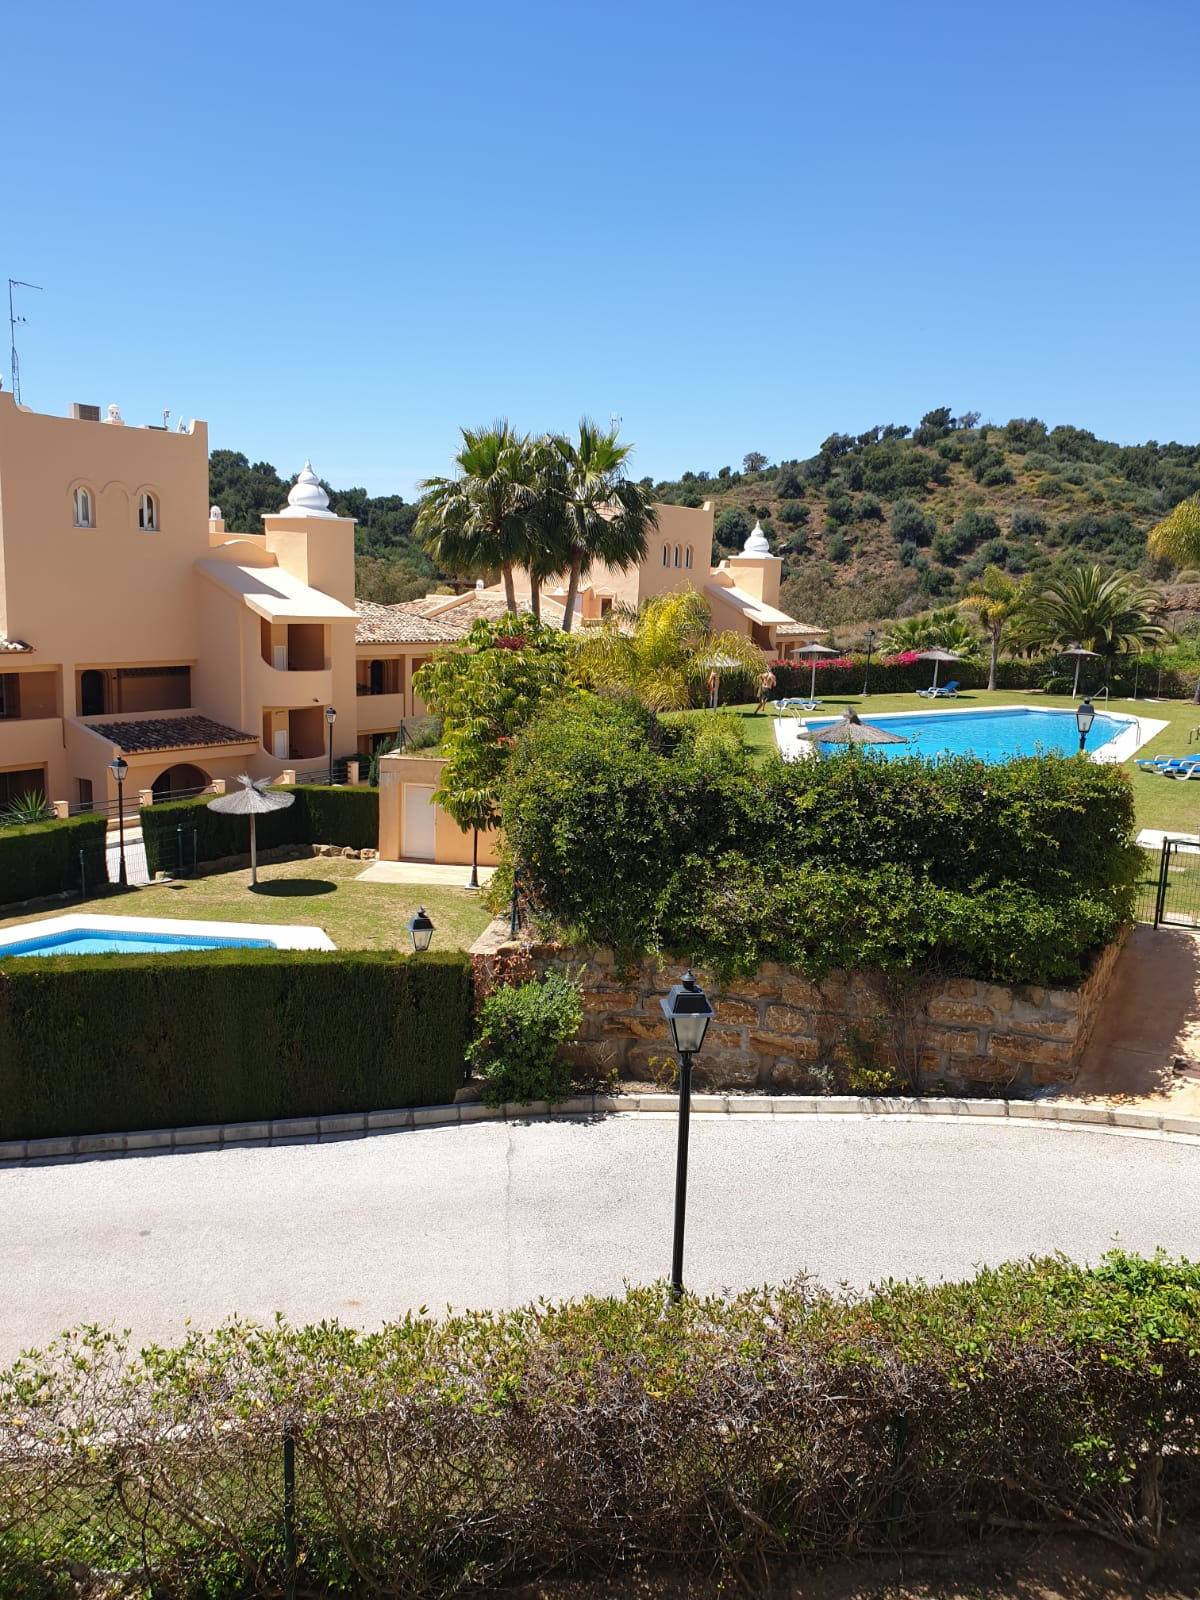 Brand new, UNUSED Beautiful  fully FURNISHED 2 bedroom apartment (was a show flat) in a luxury compl, Spain